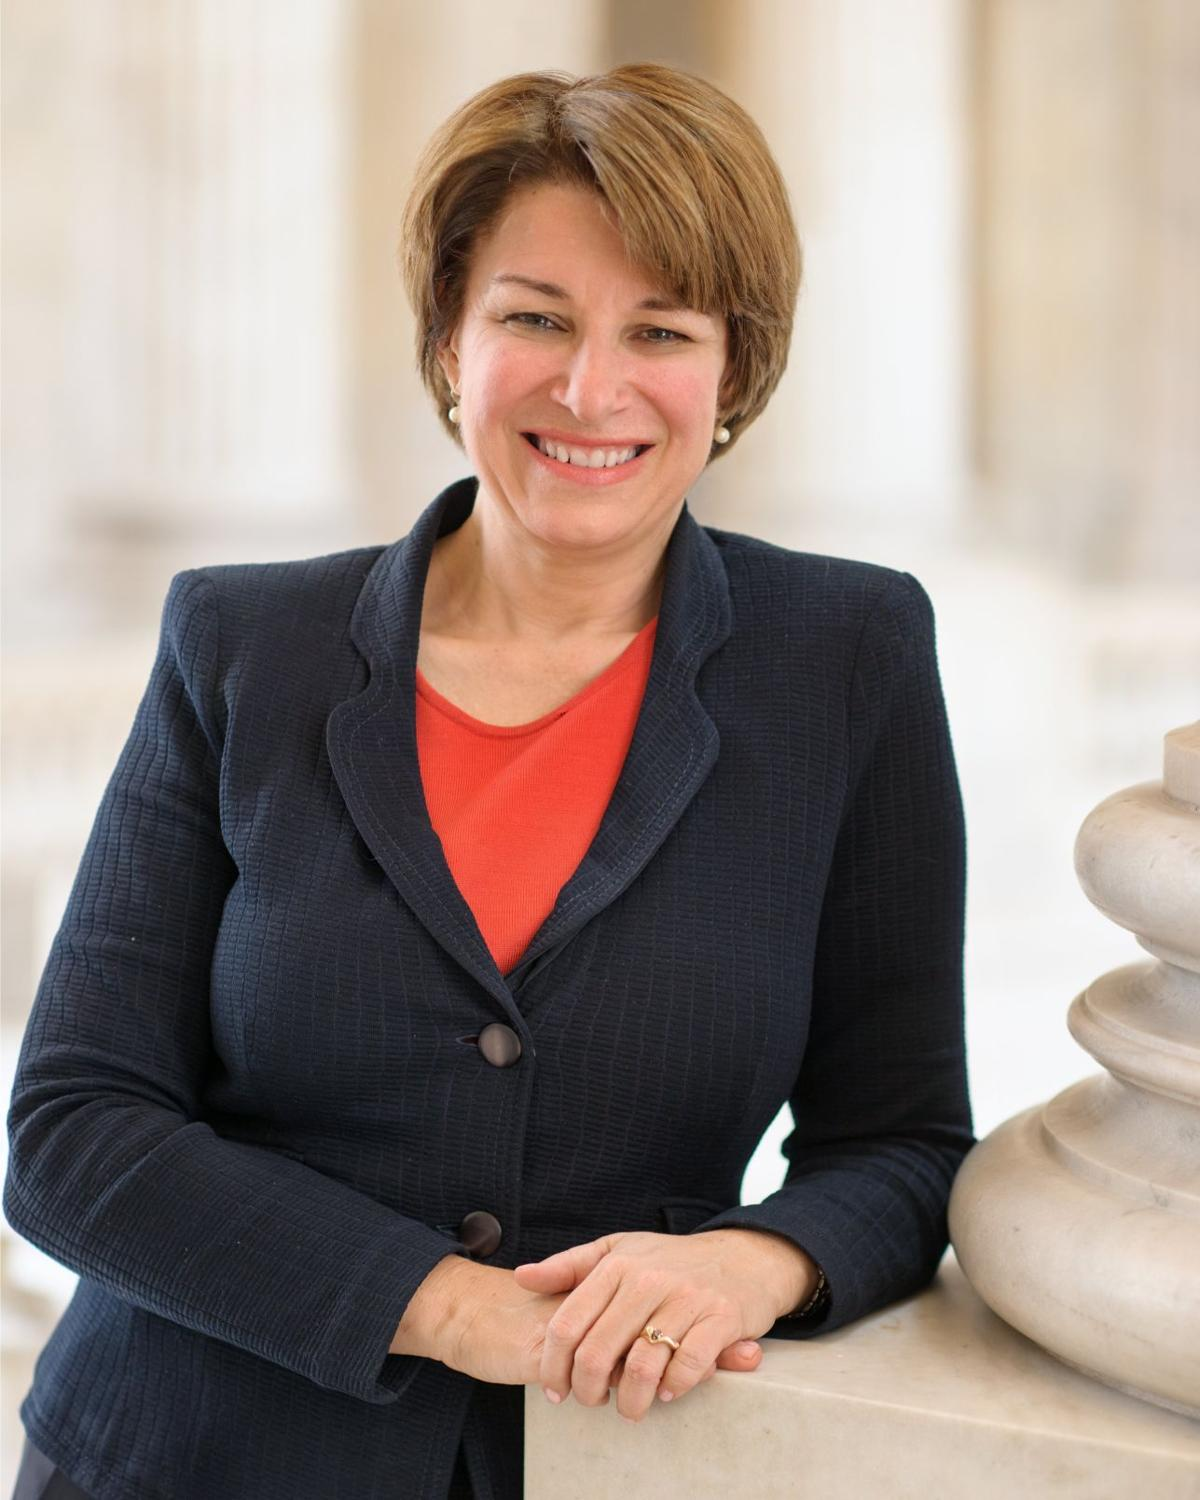 Amy Klobuchar joins Democrats calling for impeachment proceedings